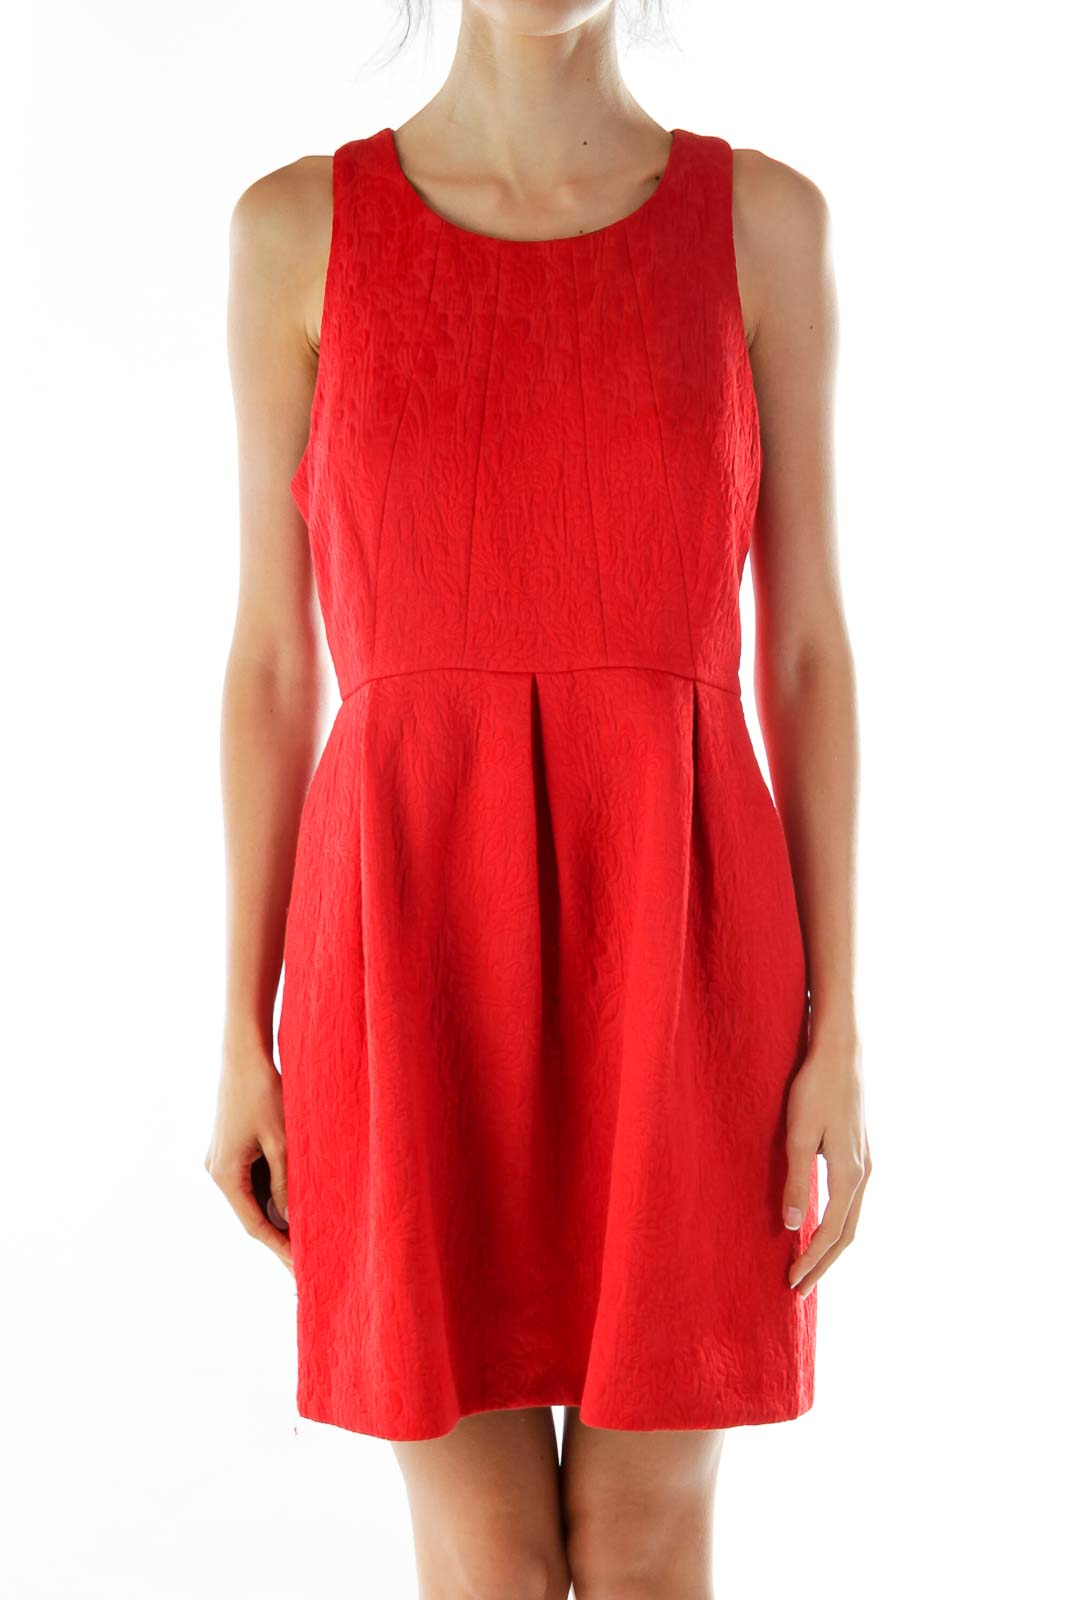 Red Sleeveless Textured Cocktail Dress Front